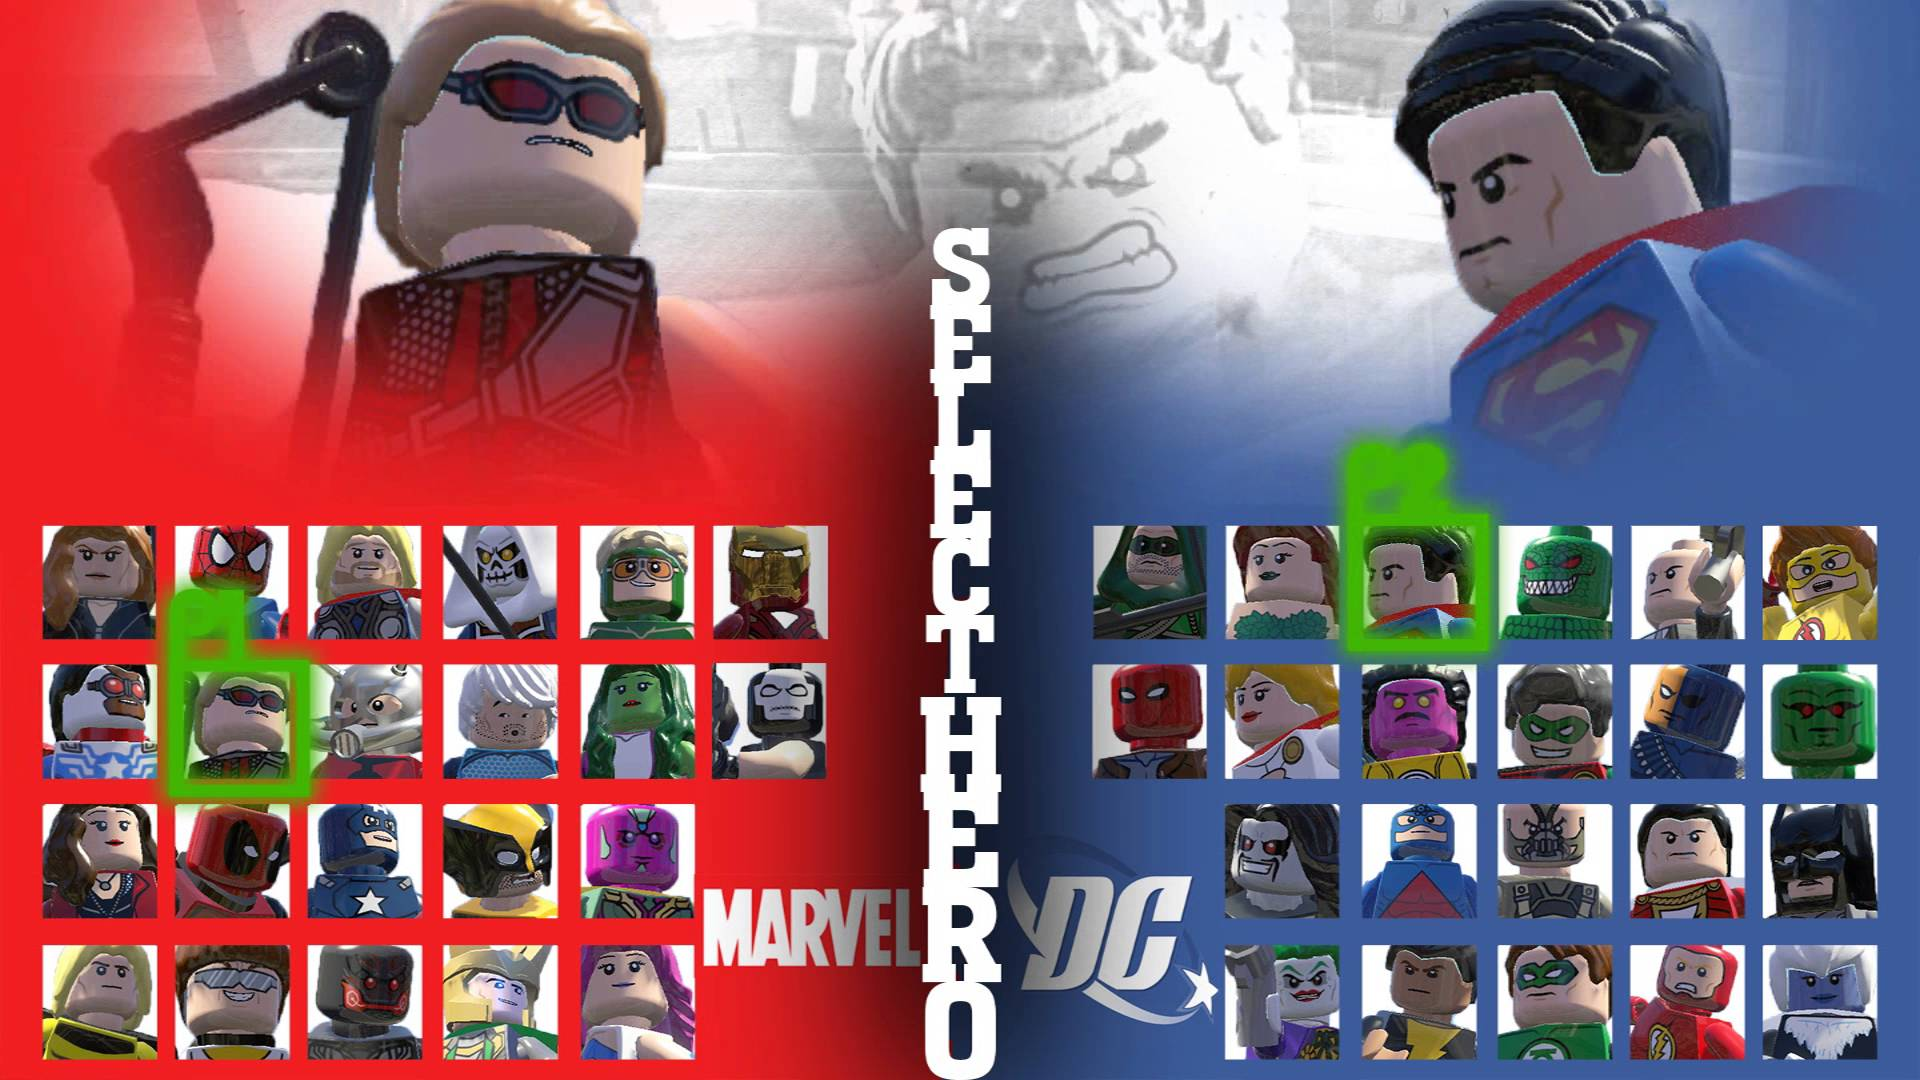 1920x1080 LEGO MARVEL VS DC SUPER HEROES - START GAME! - YouTube